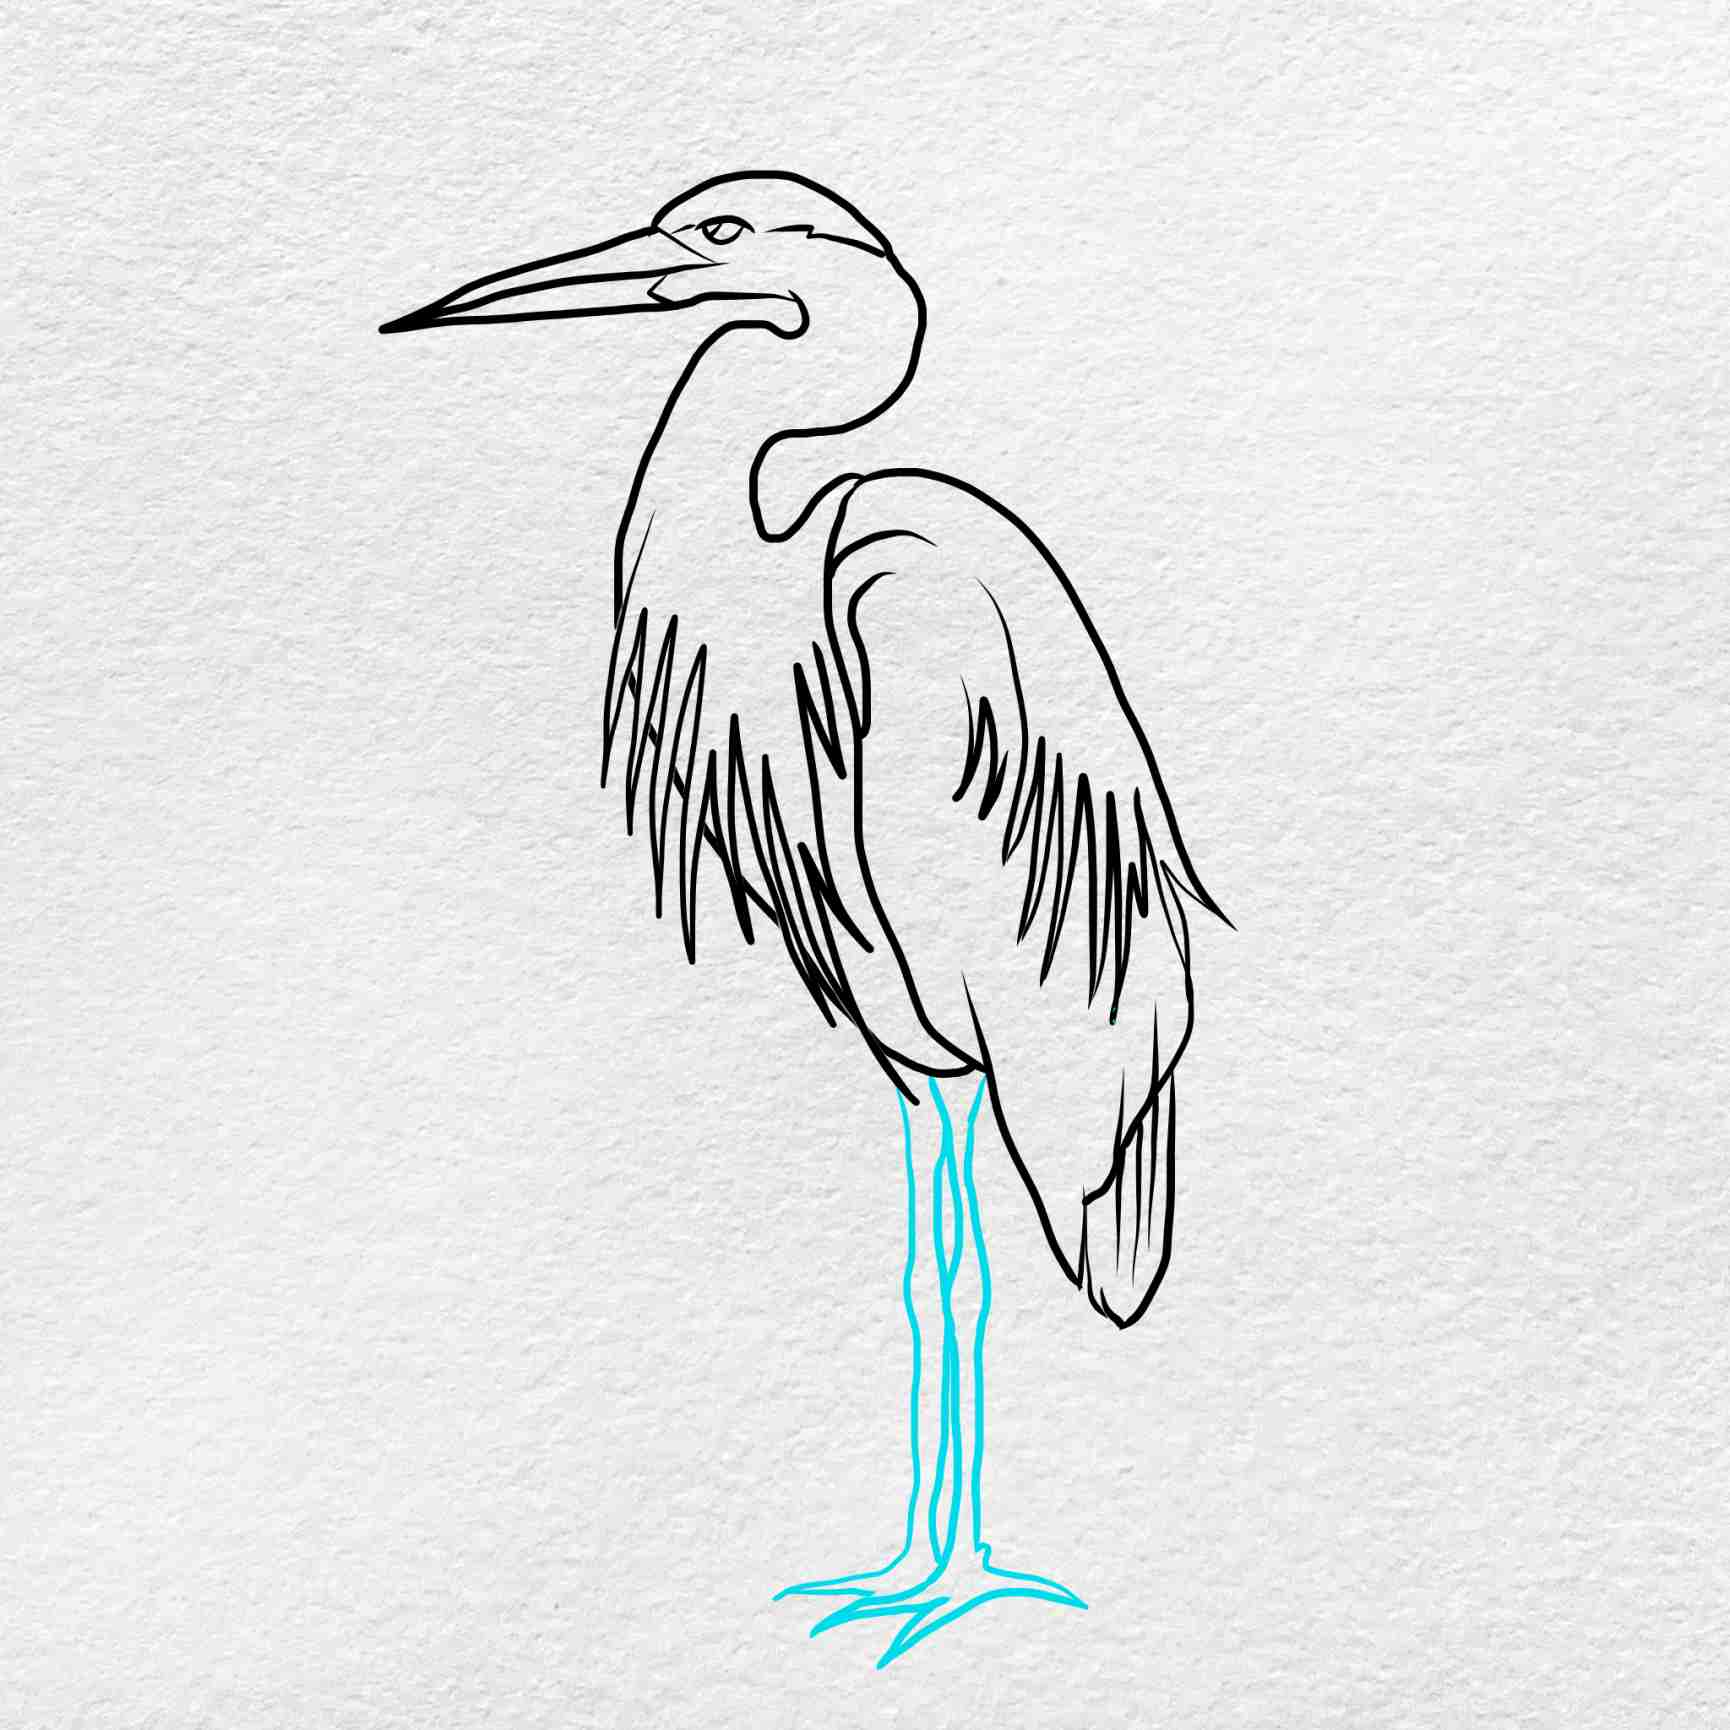 How To Draw A Heron: Step 5